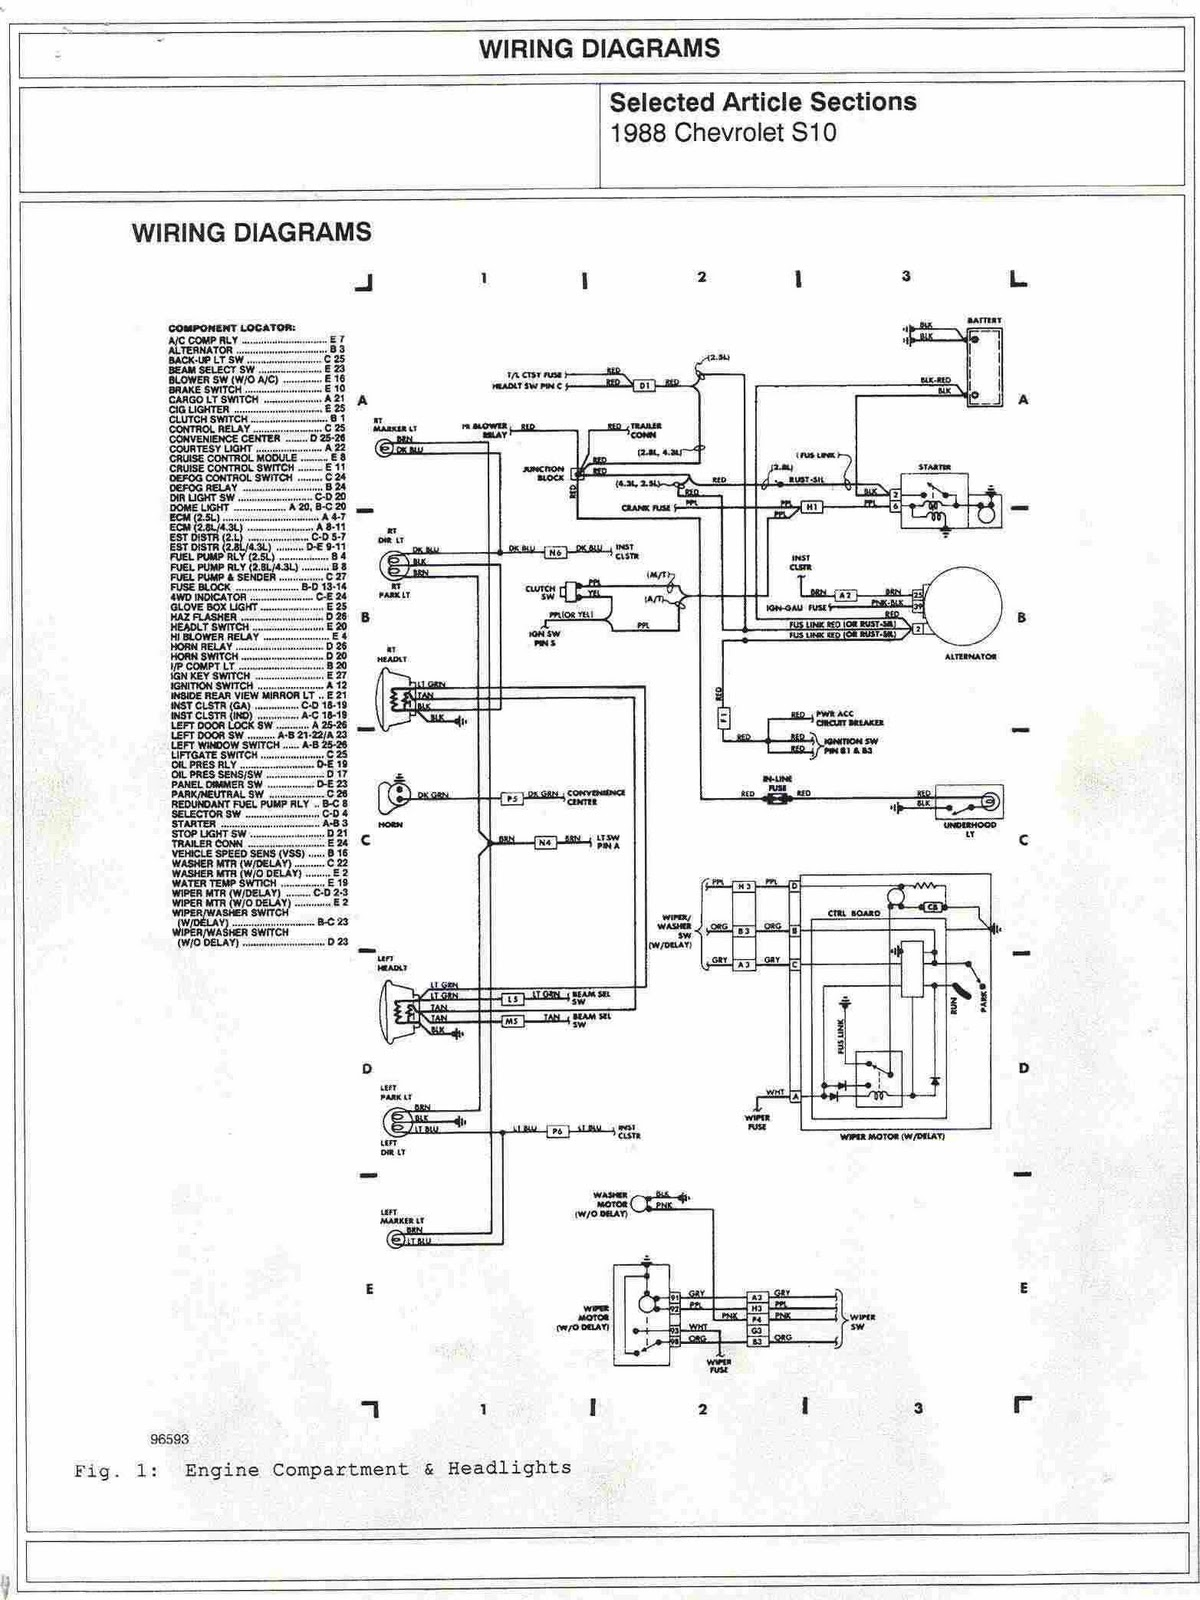 1988+Chevrolet+S10+Engine+Compartment+and+Headlights+Wiring+Diagrams 95 s10 wiring diagram 95 tahoe wiring diagram \u2022 wiring diagrams alpine iva d100 wiring diagram at soozxer.org